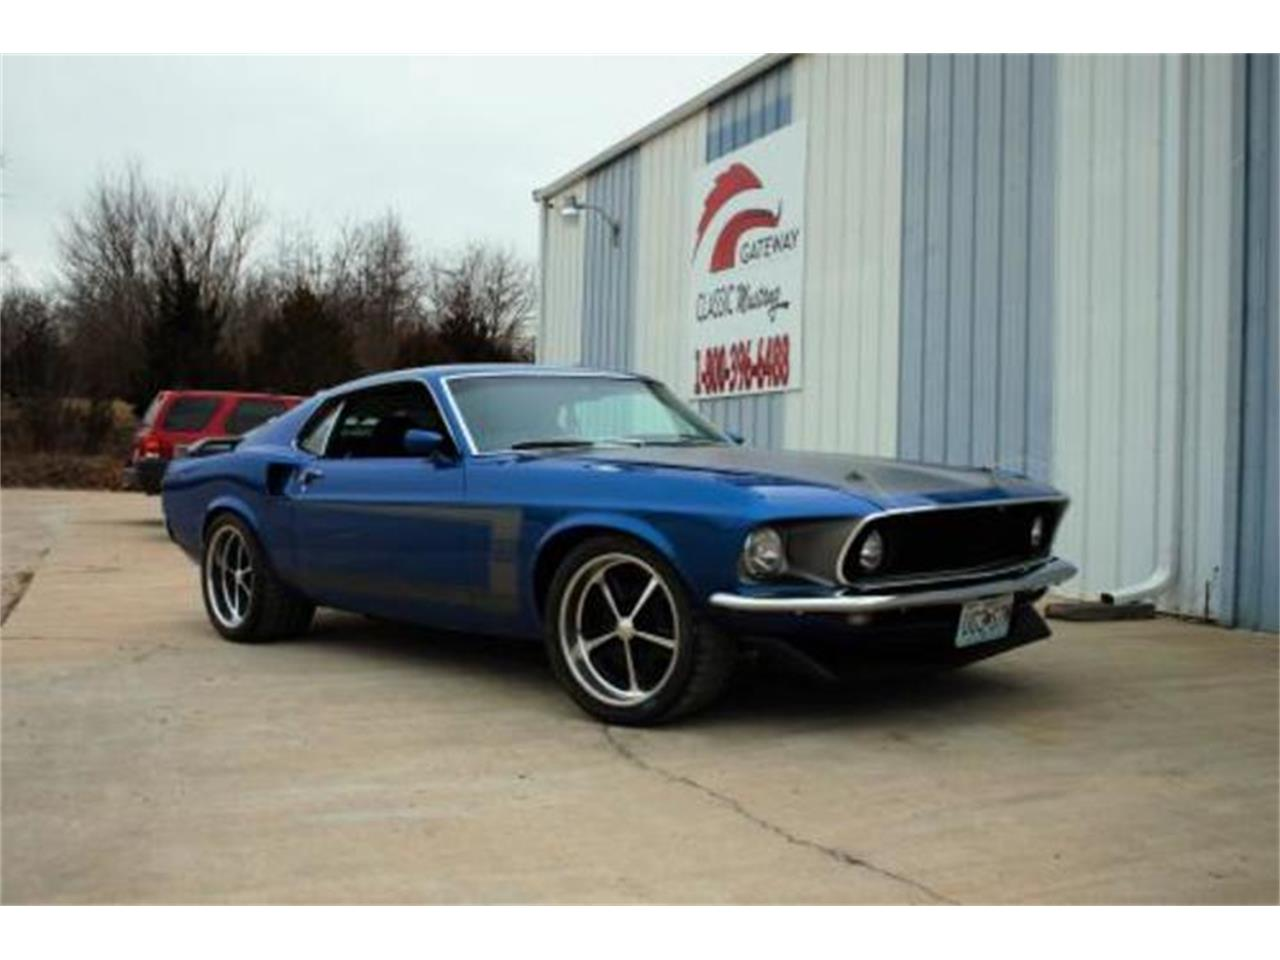 Large picture of 69 ford mustang mach 1 offered by abc dealer test kiir